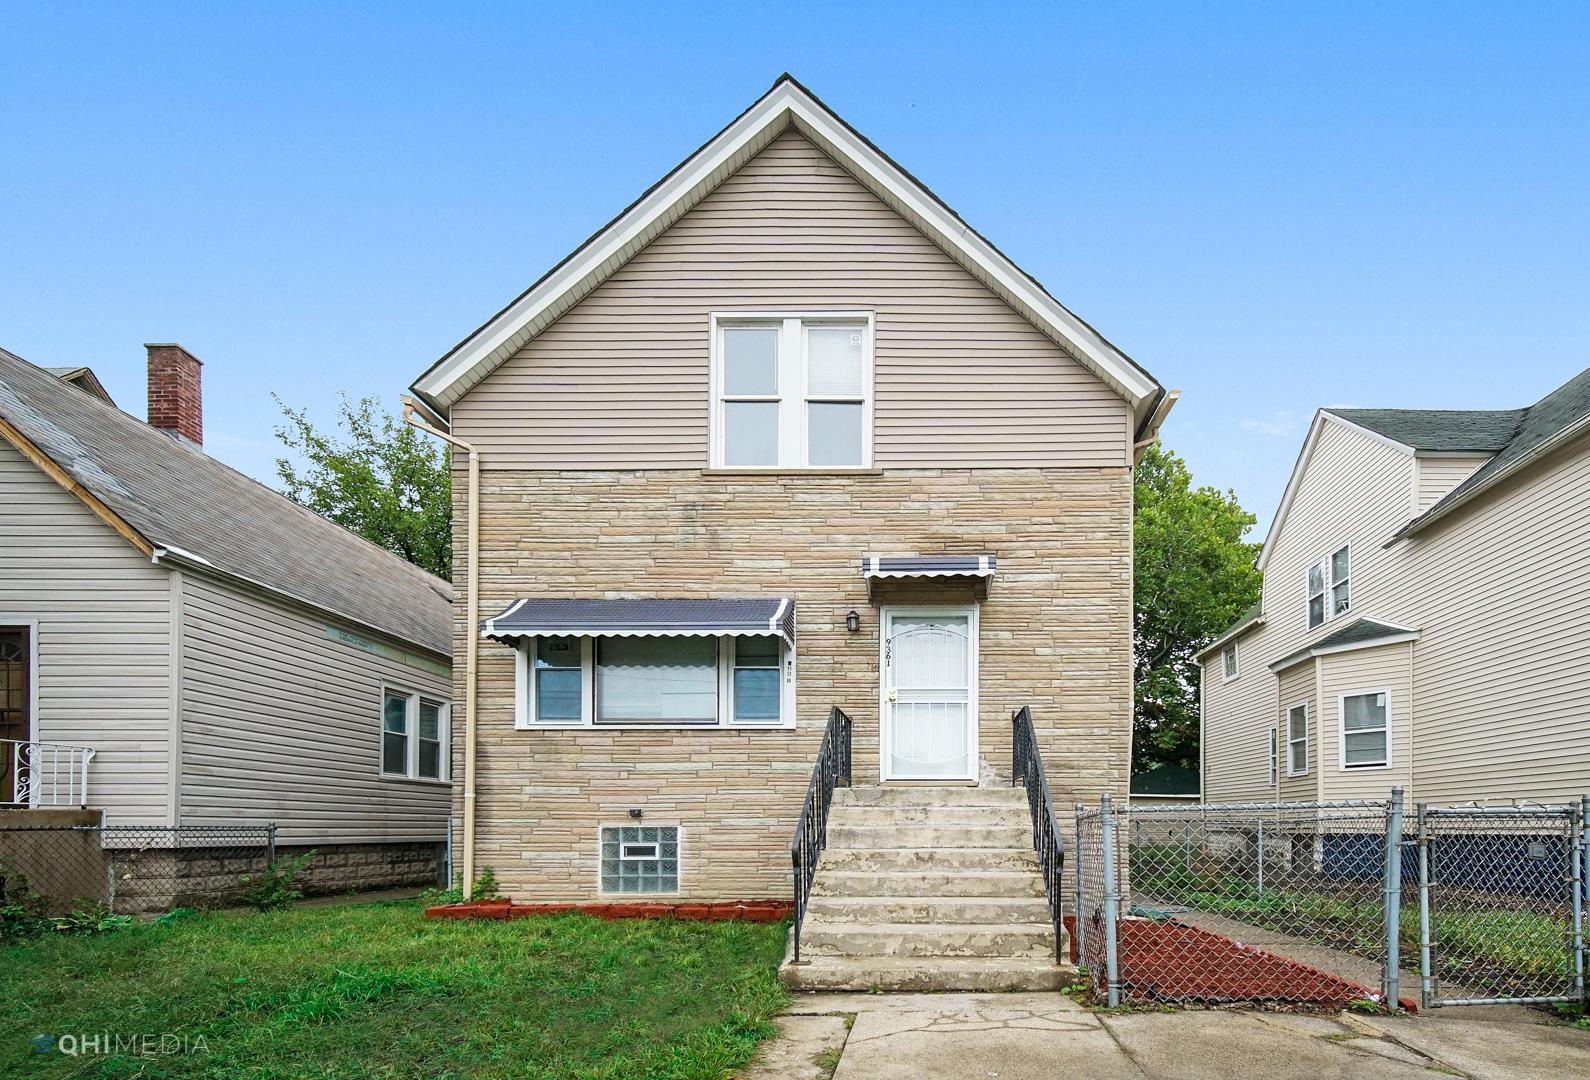 9361 S ST. LAWRENCE Street, Chicago, IL 60619 - #: 10827994